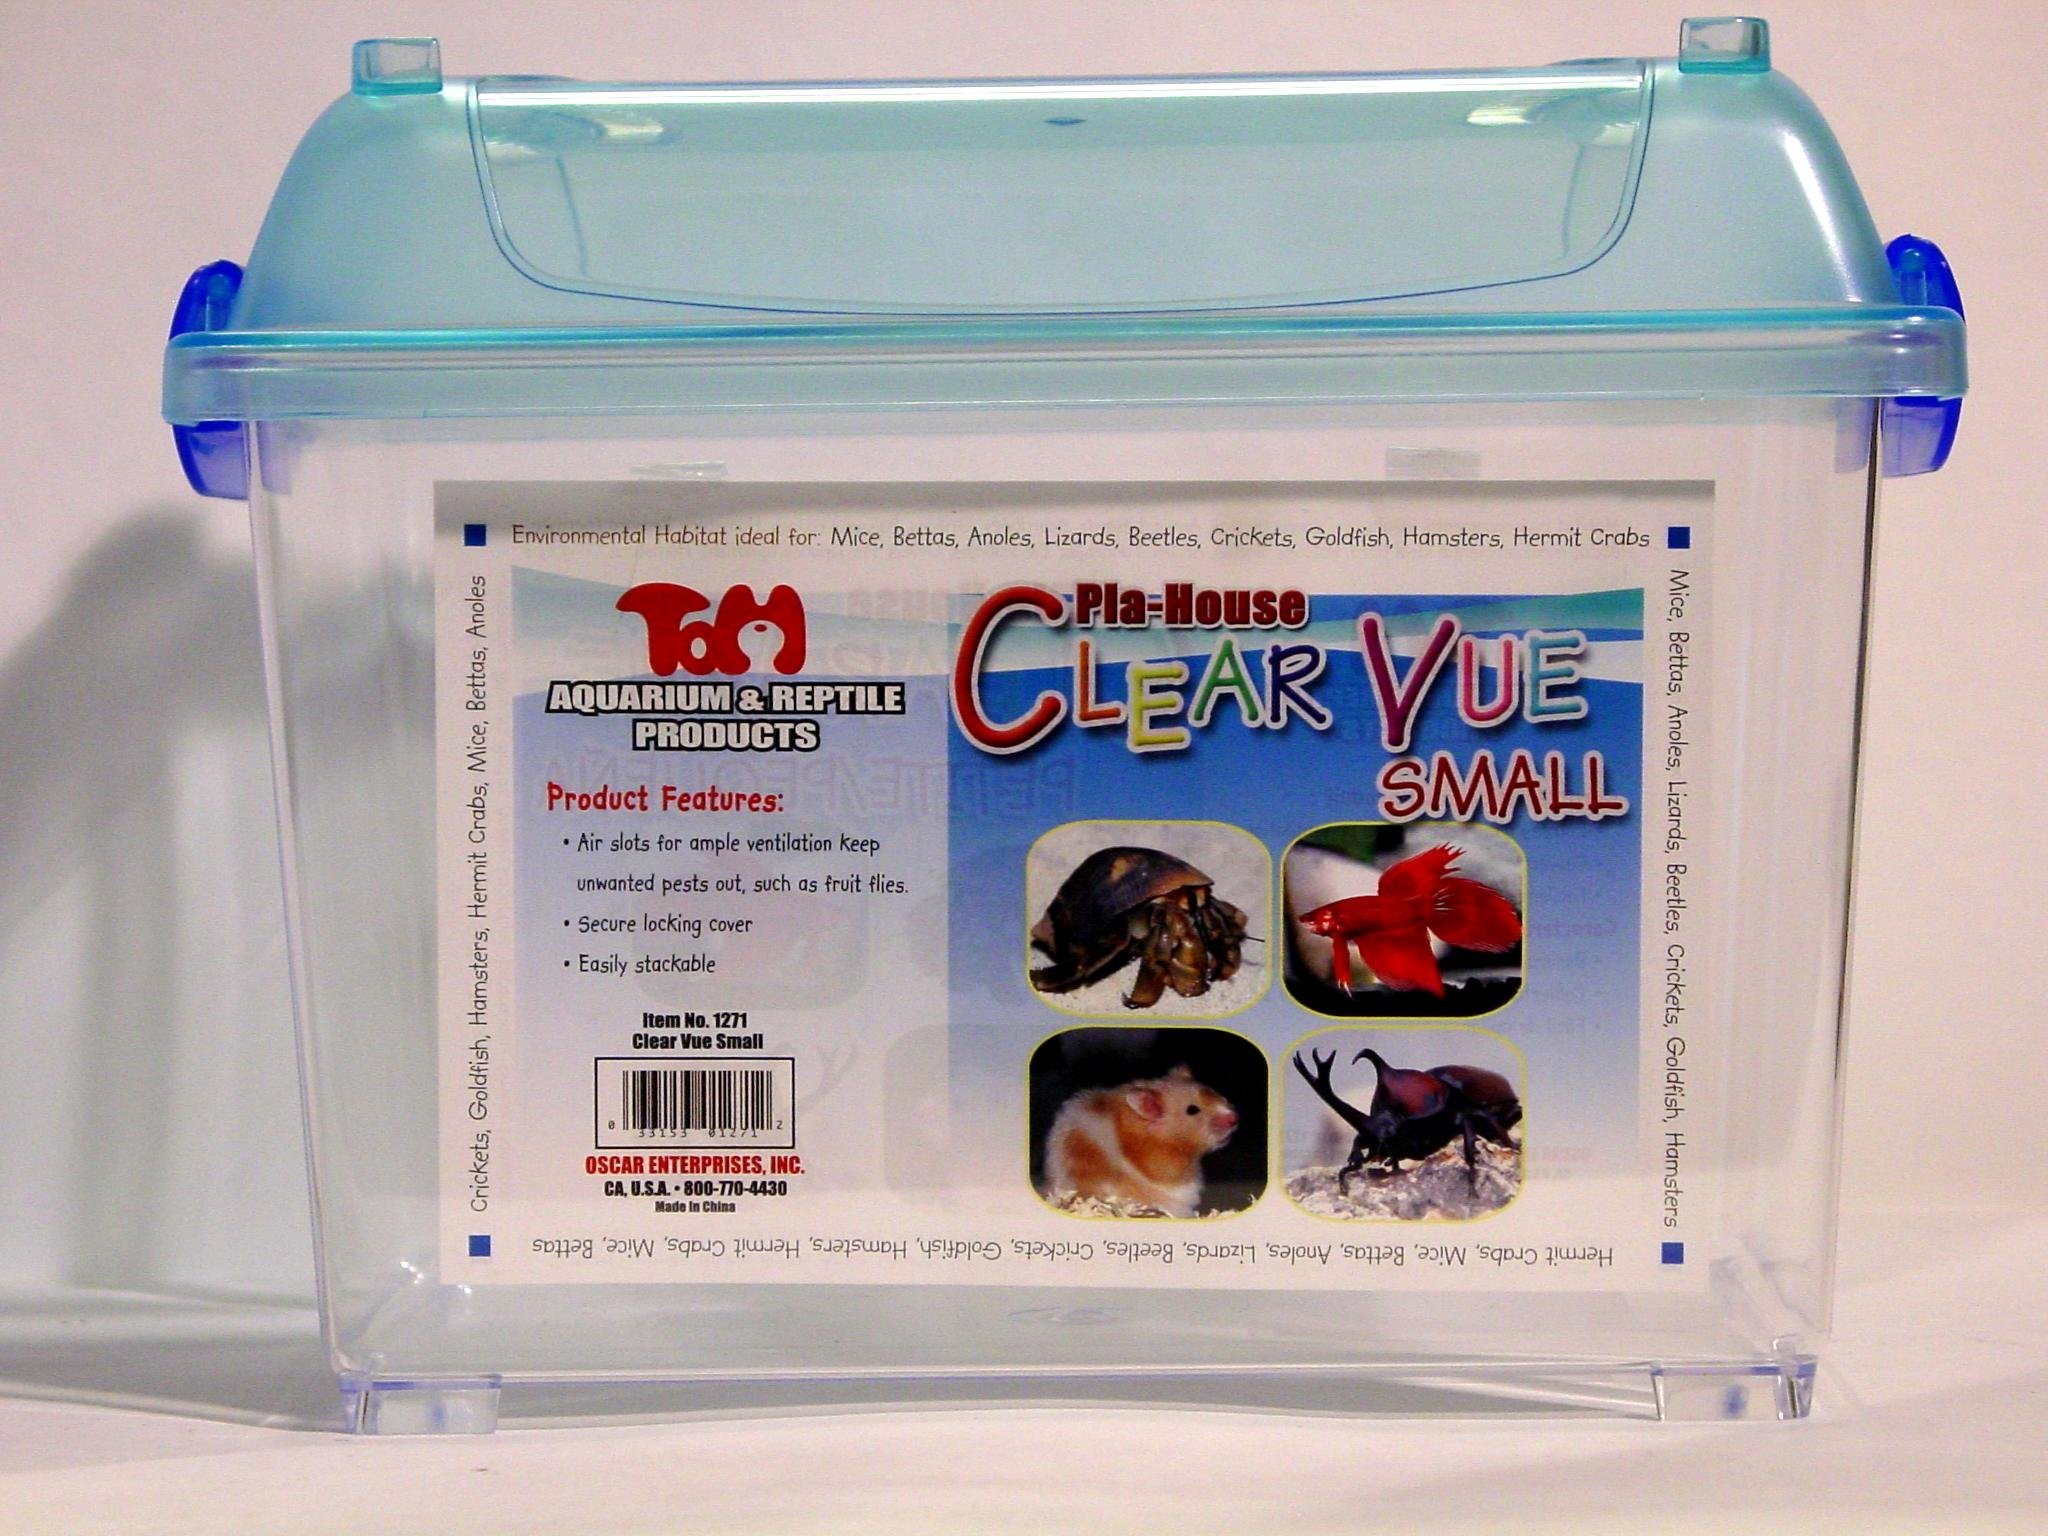 Koller Products Clear Vue Small Animal Habitat, Size Small by KollerCraft (Image #1)